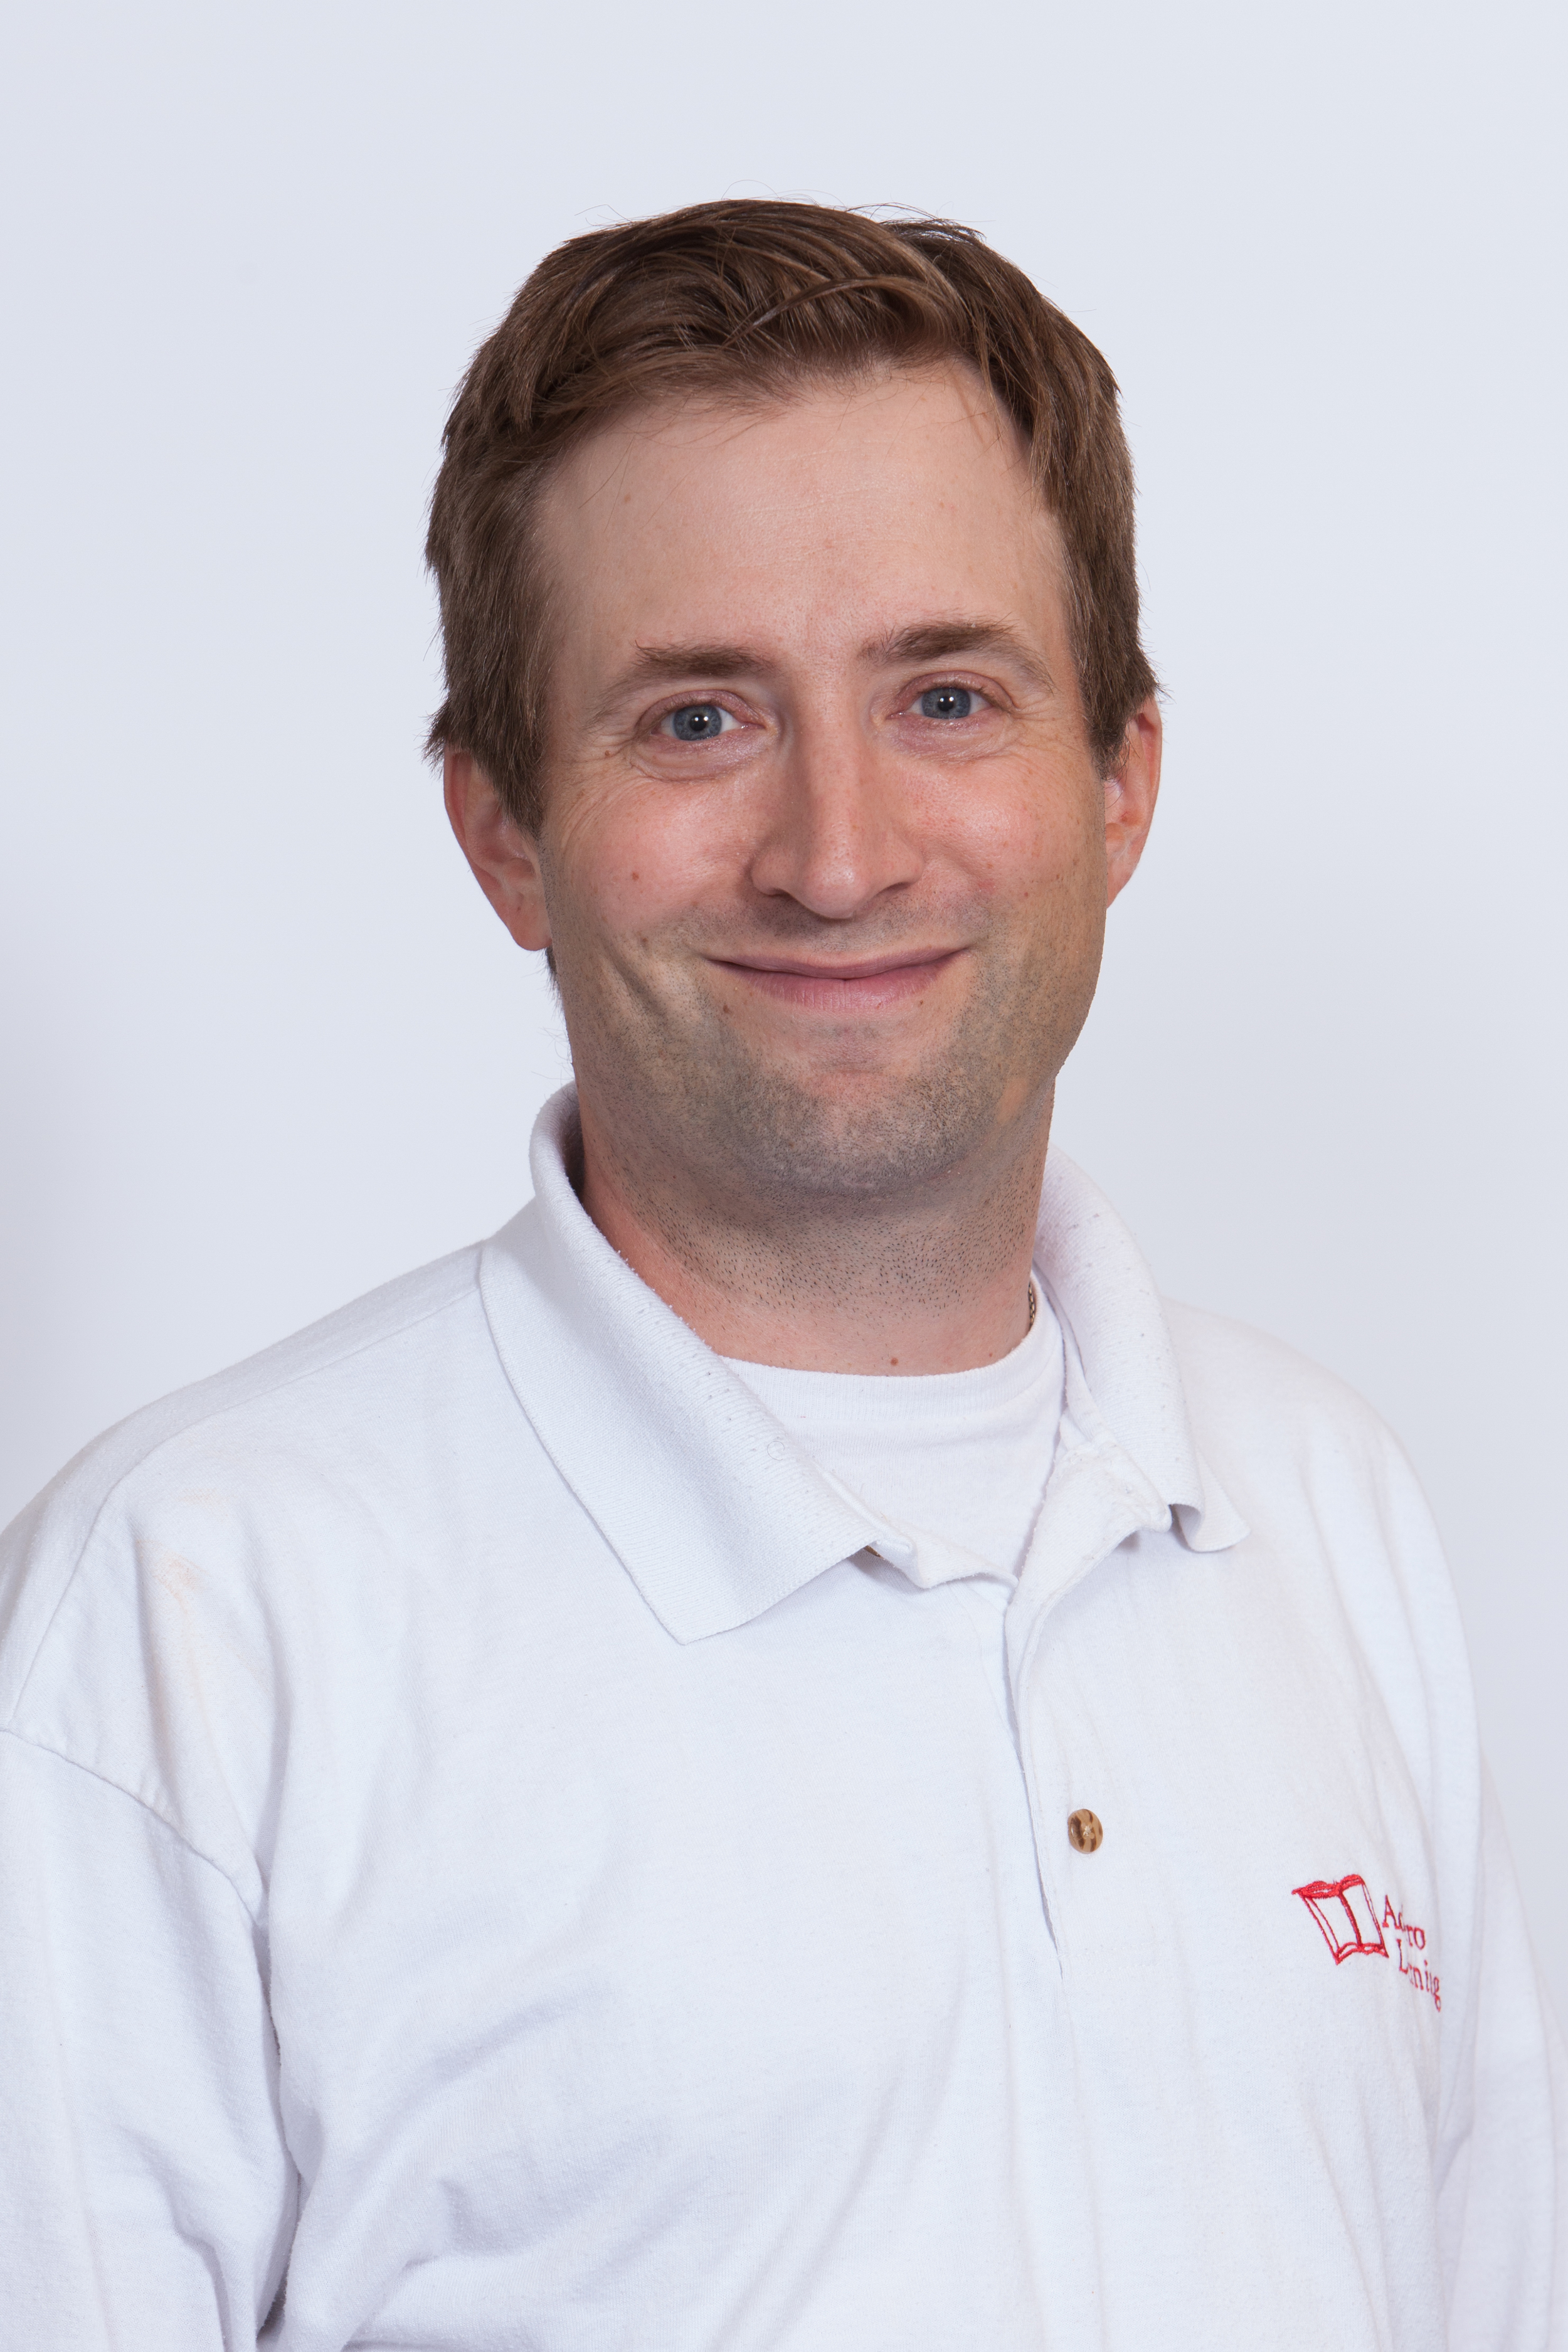 Henry Wilde, Co-Founder & CEO (Madison, WI)